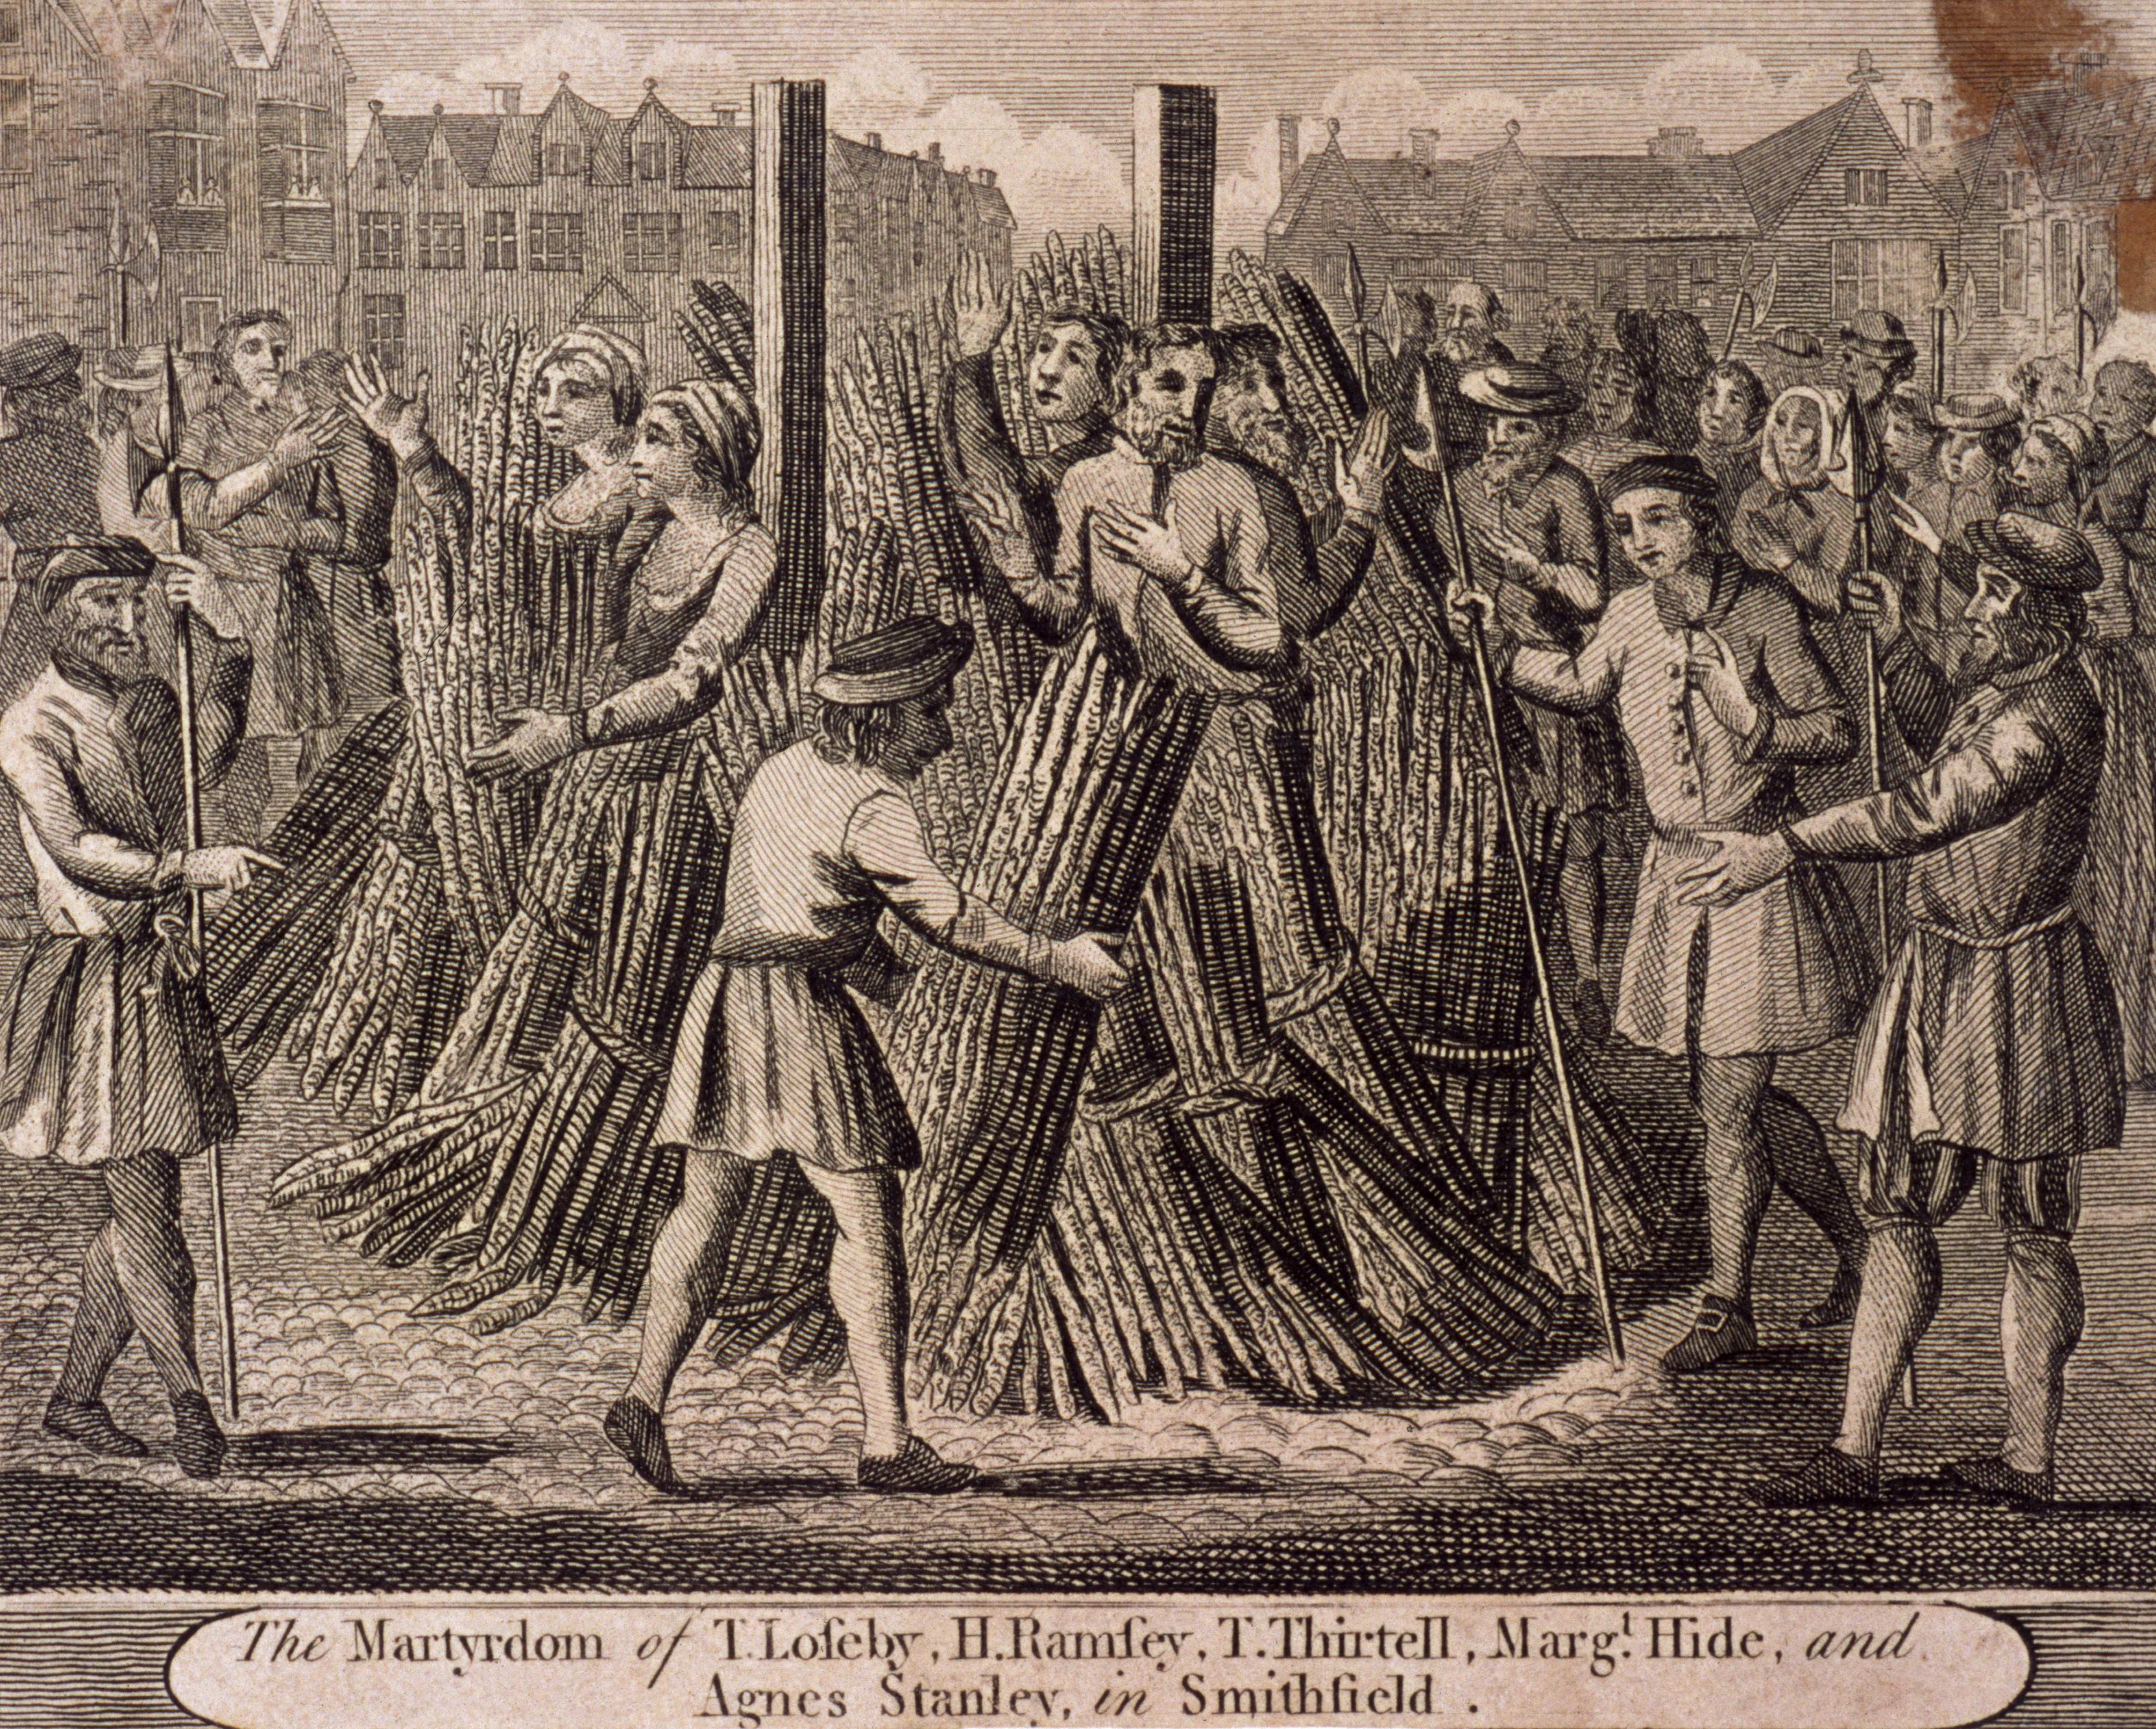 persecution of witches during the renaissance history essay Follow/fav the witch craze of the 16th & 17th centuries by:  the renaissance witch-craze  persecution of witches increased markedly at the same time the .